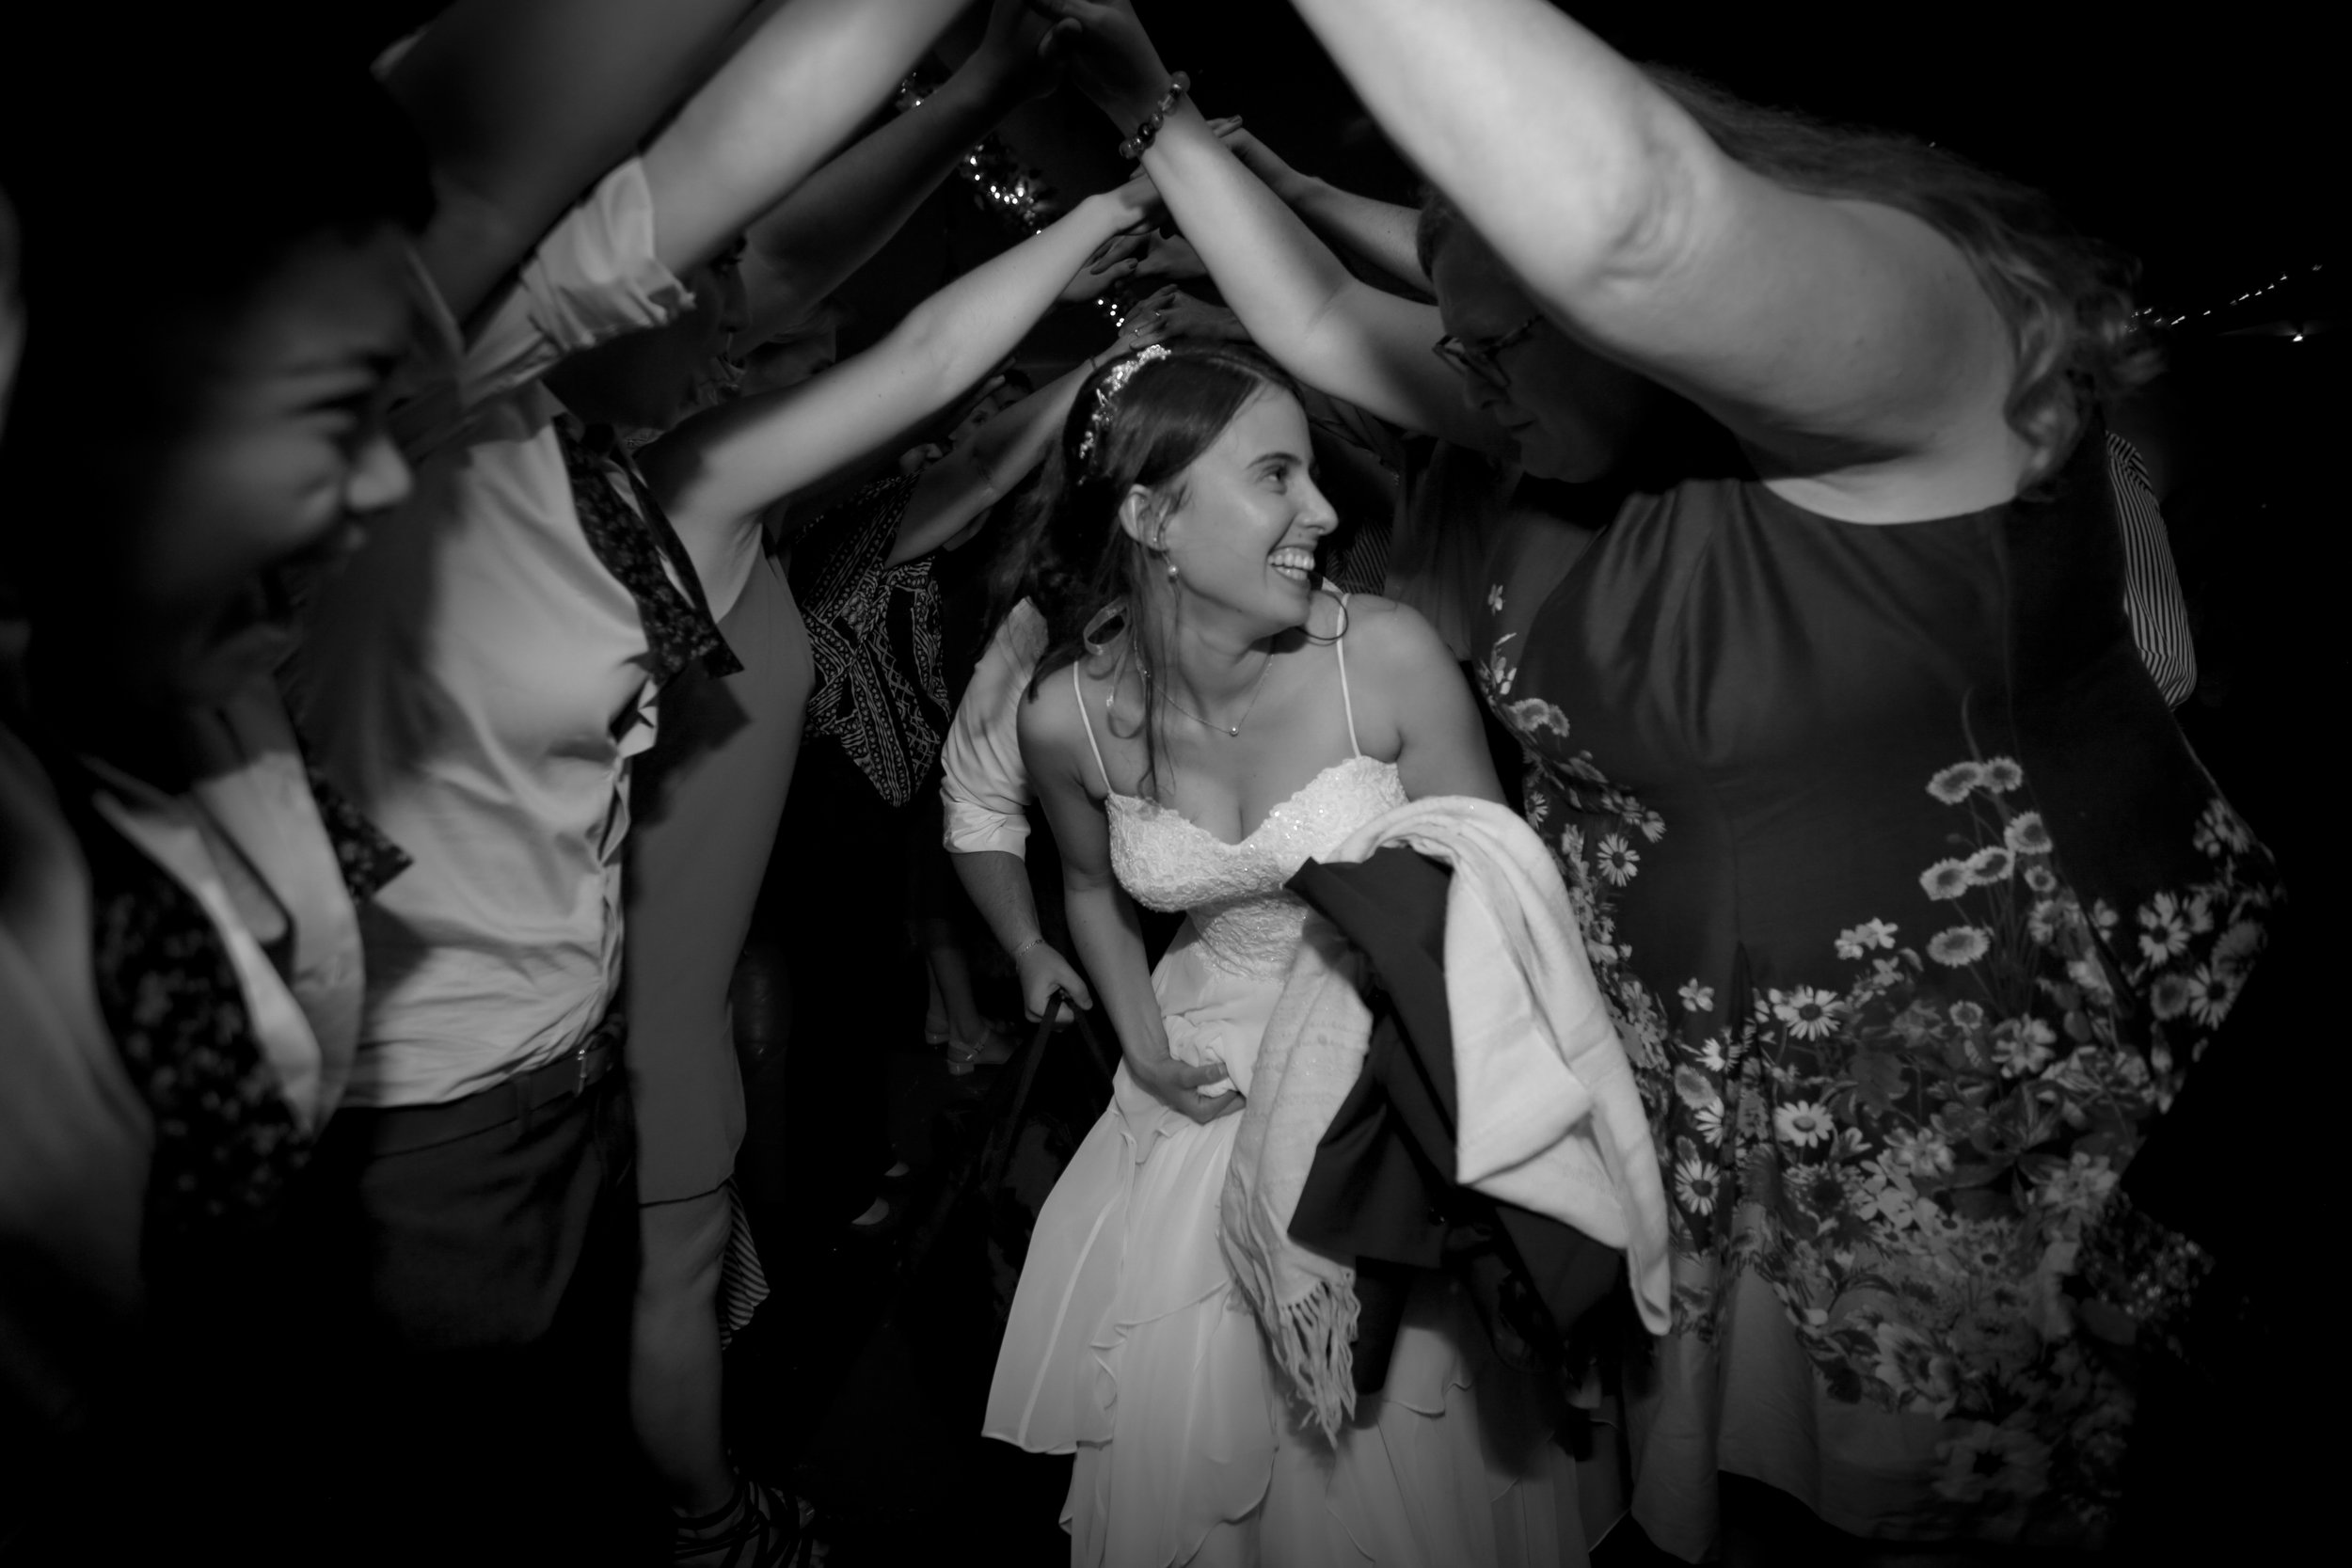 Emily&AaronWedding (570 of 572).jpg